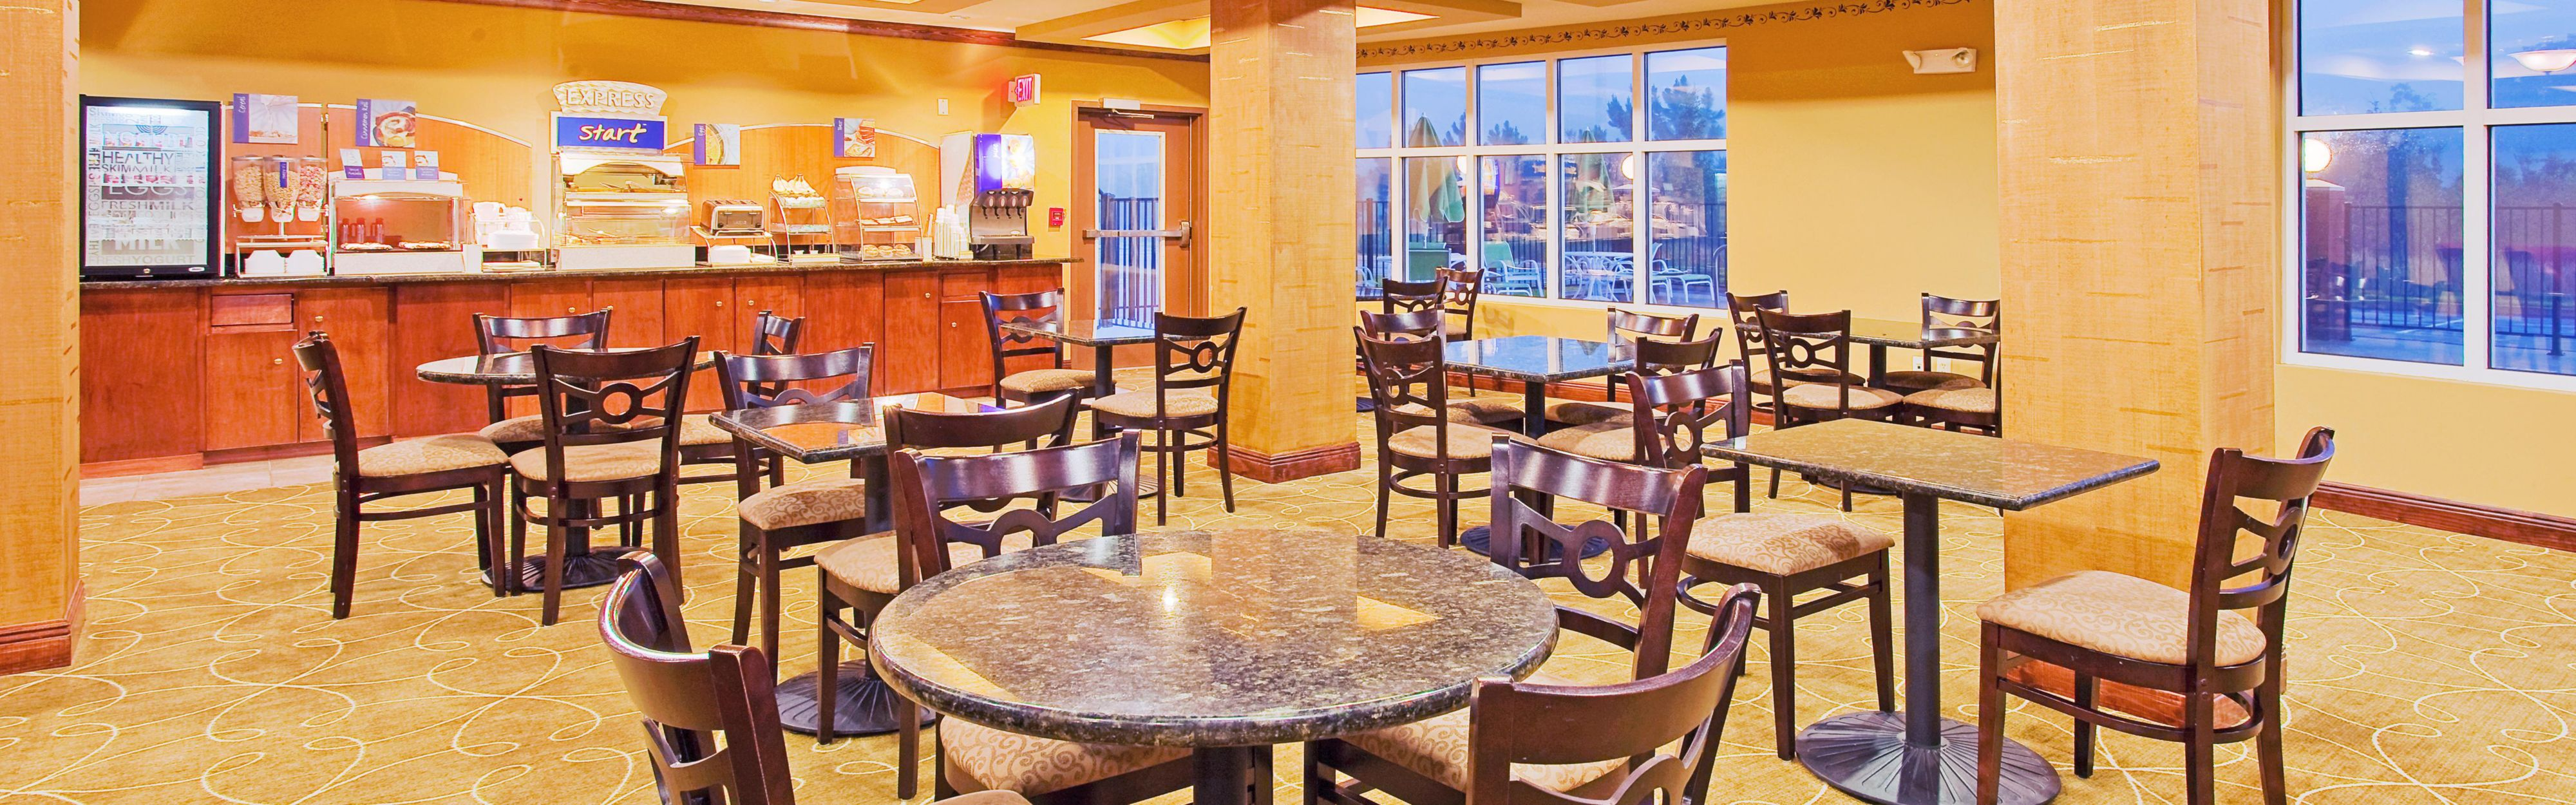 Holiday Inn Express & Suites Foley - N Gulf Shores image 3